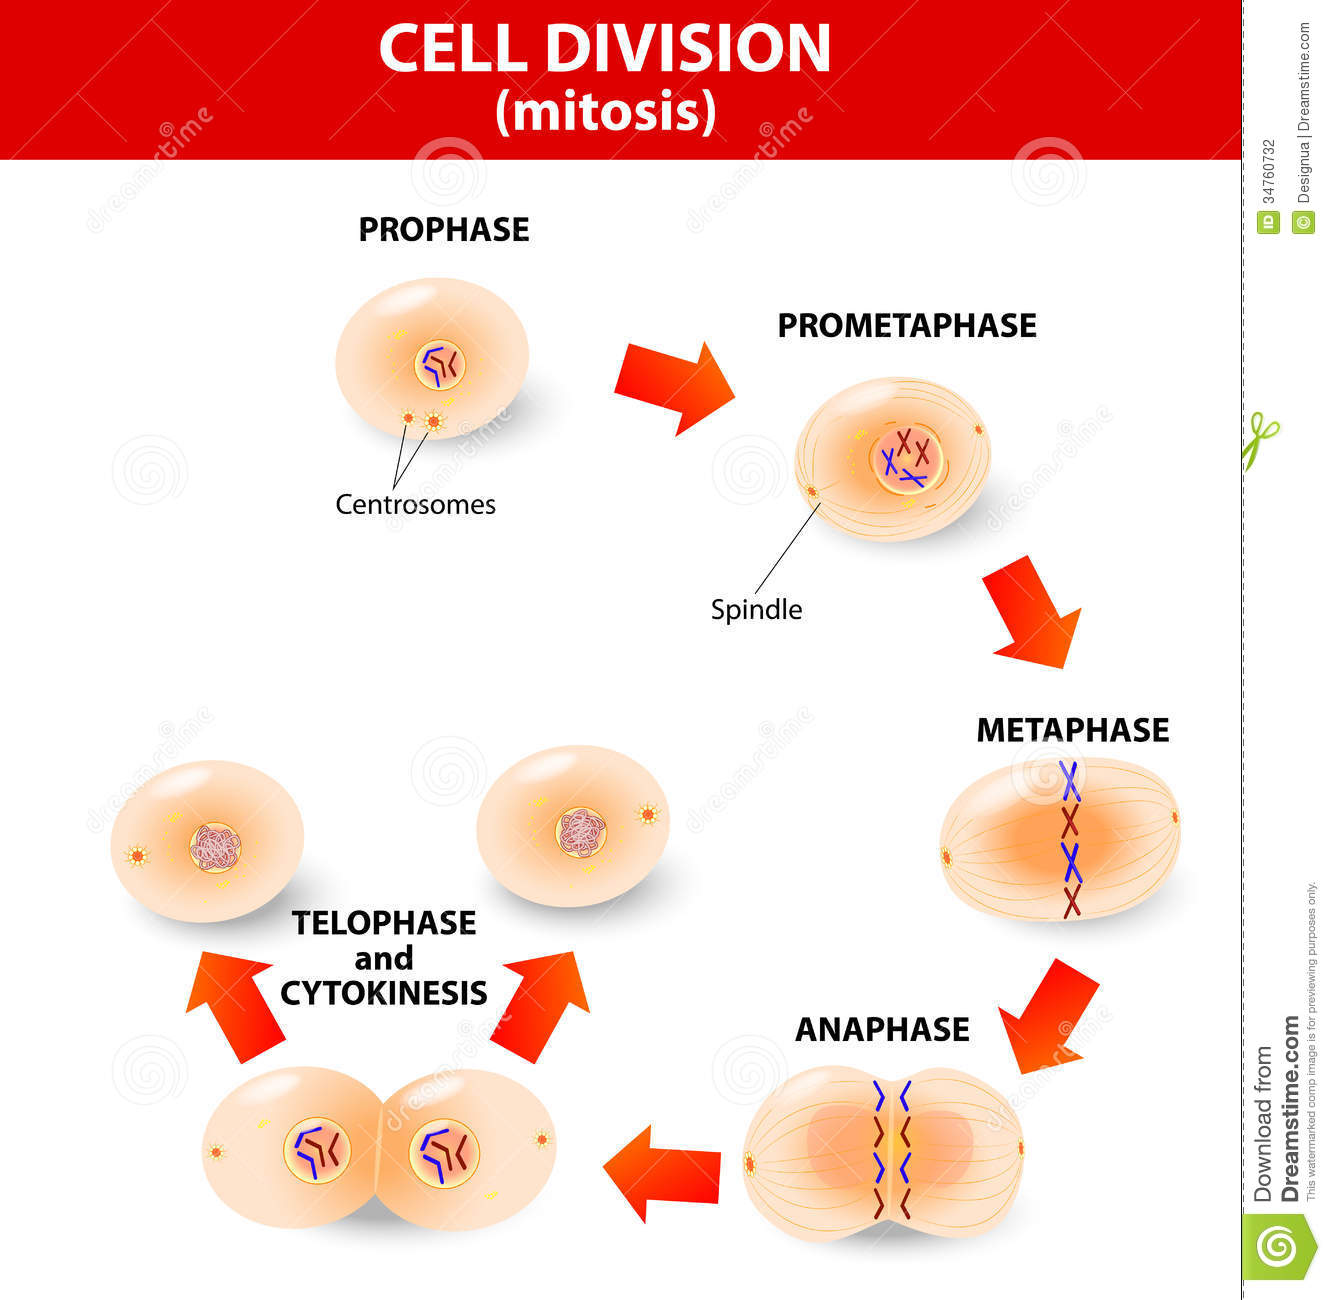 animal cell mitosis diagram dryer wiring schematic process division stock photography image